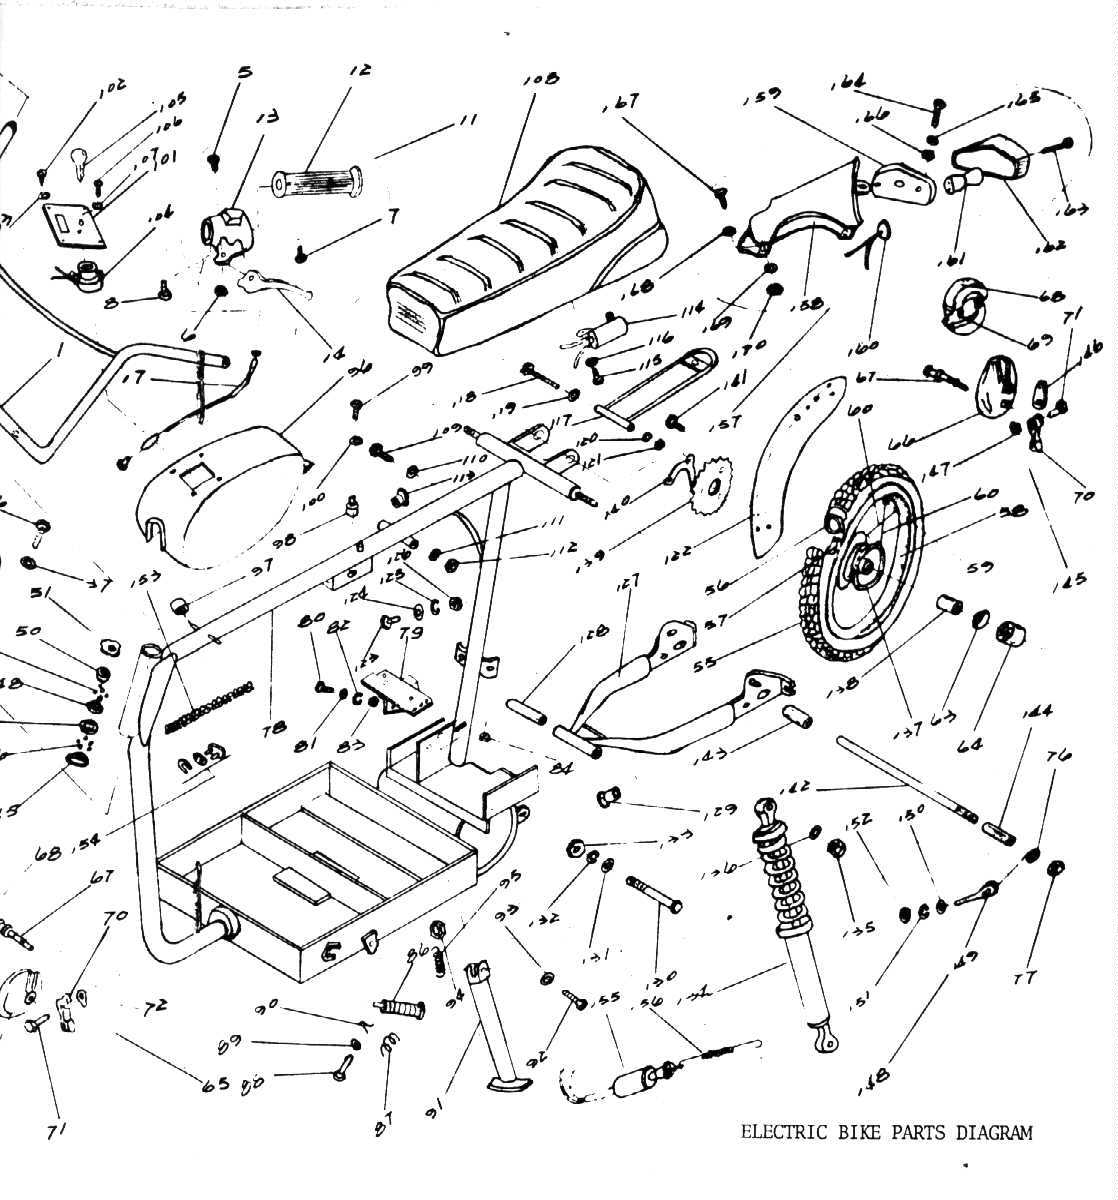 2 Cycle Ezgo Marathon Parts Diagrams